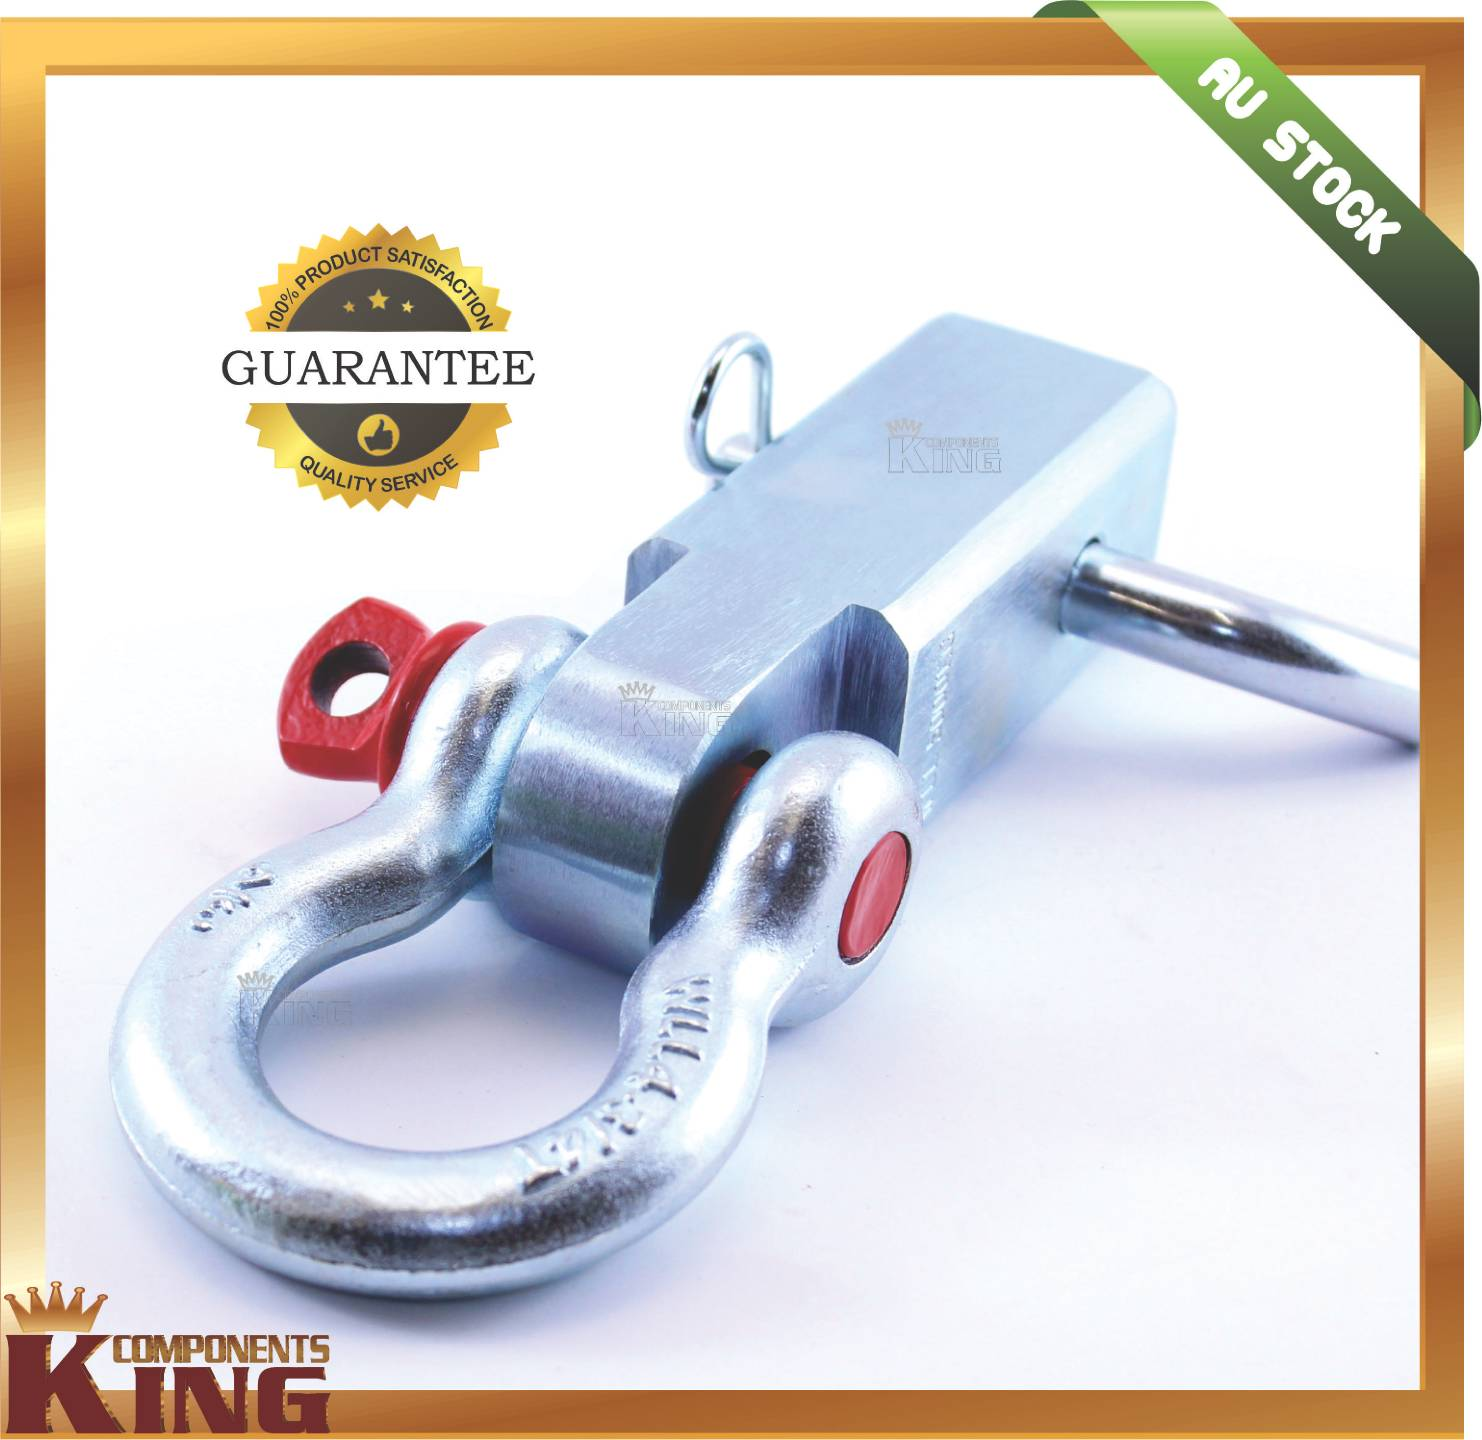 Recovery-Hitch-5-Ton-Rated-with-rated-Bow-Shackle-Tow-Bar-4wd-4X4-Off-Road